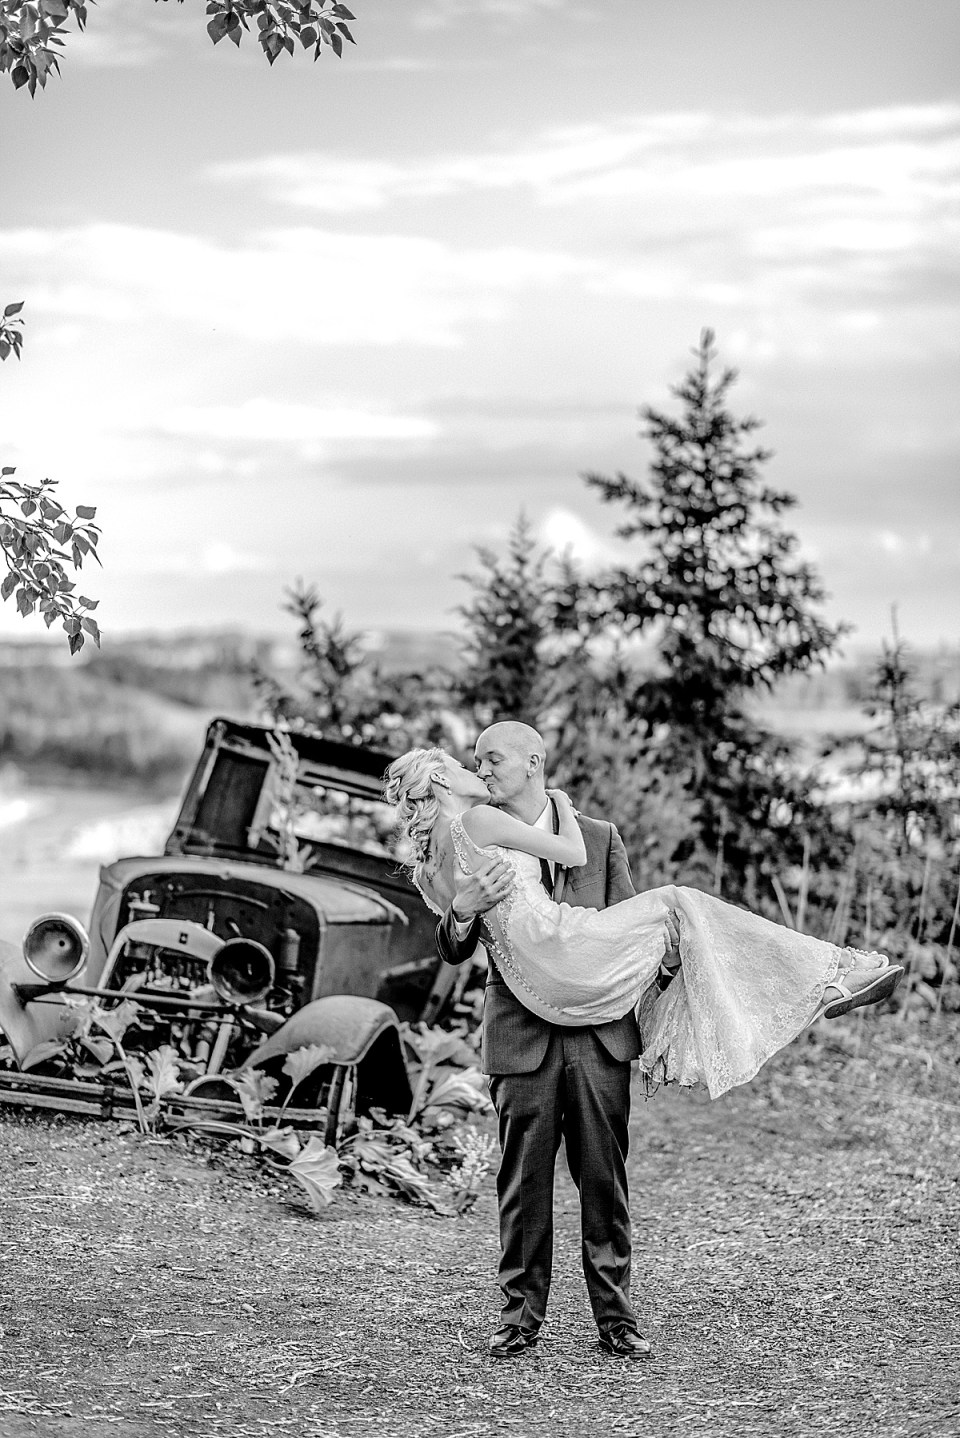 Bride-and-groom-photos-wedding-at-saskatoon-farm-near-calgary-raelene-schulmeister-photography